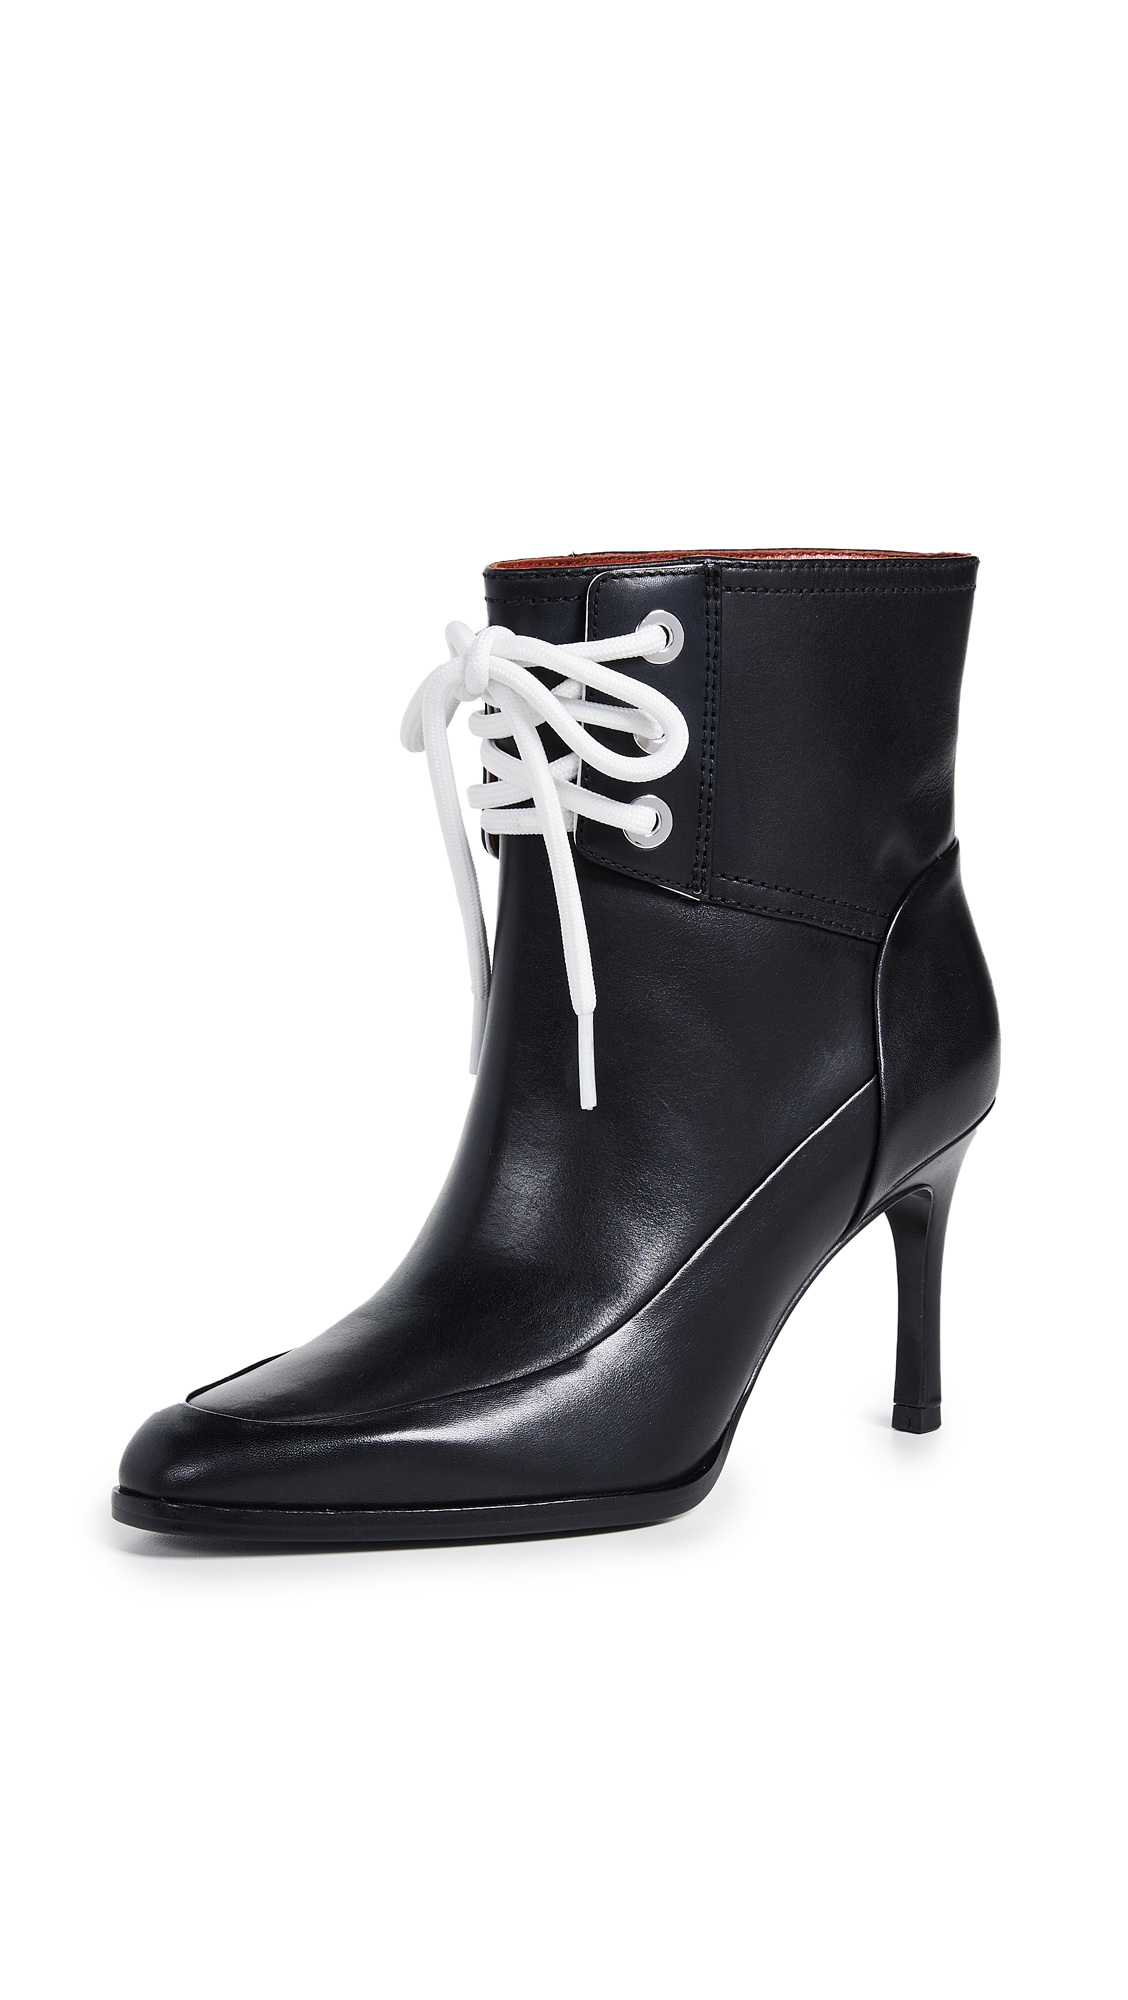 3.1 Phillip Lim Agatha Lace Up Booties - Black